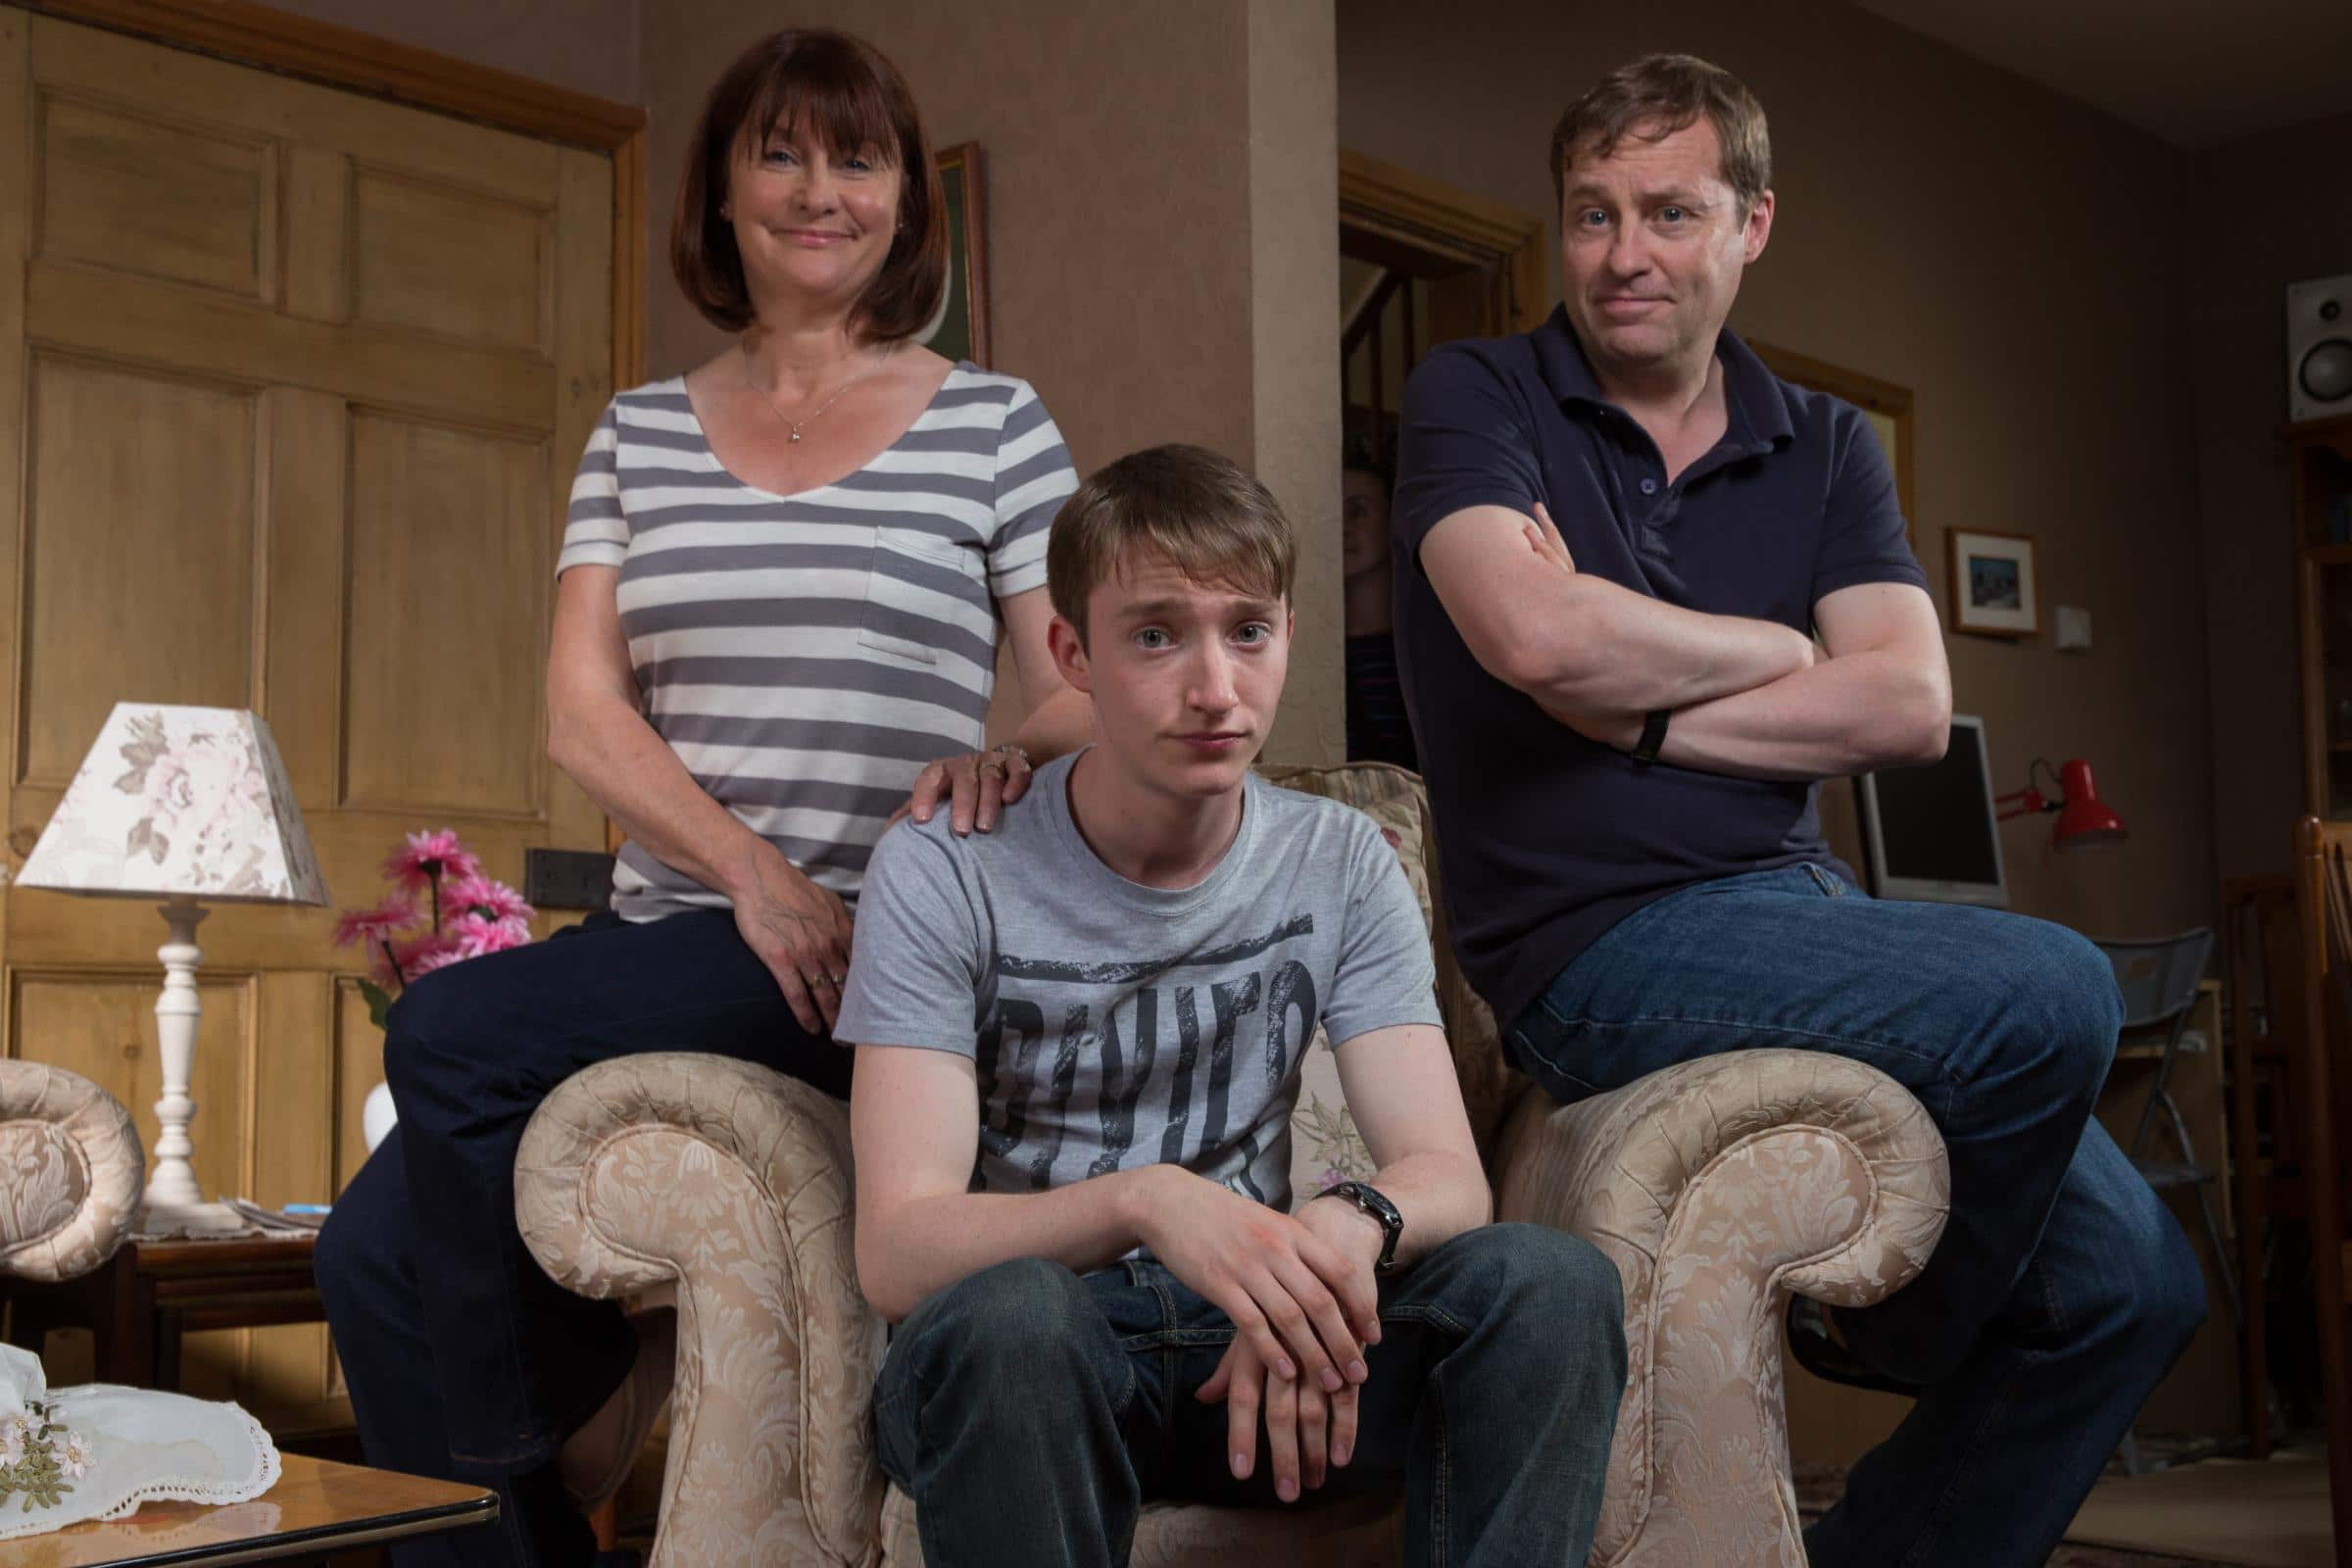 After Hours: A Village-Based British Comedy Starring Ardal O'Hanlon 2